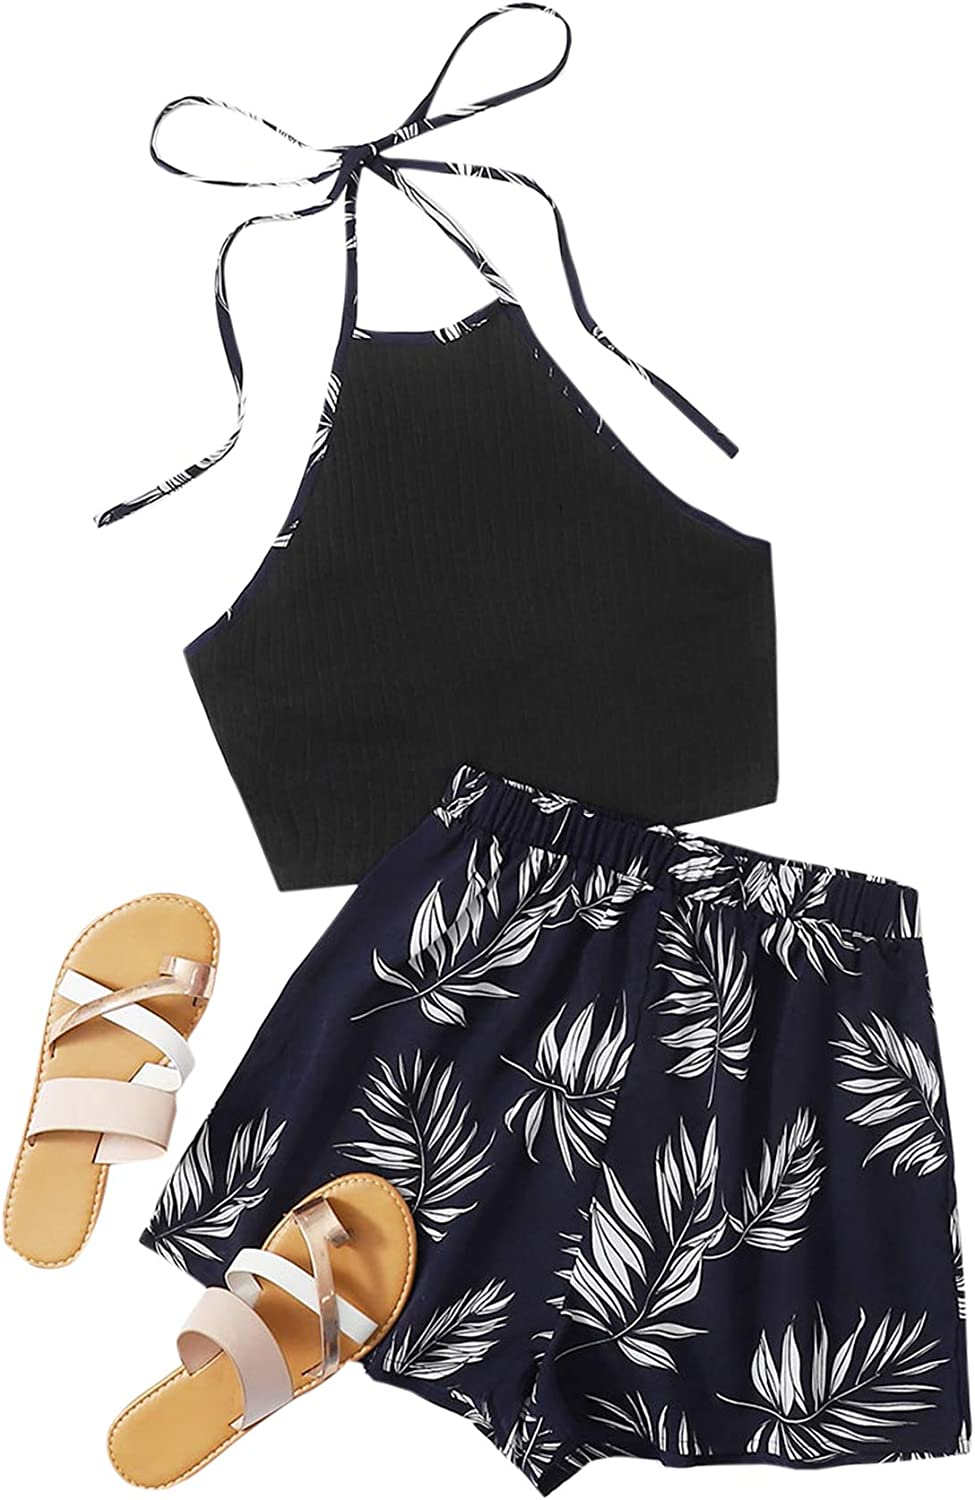 SheIn Women's Two Piece Colorblock Tie Back Halter Cami Camisole Top and Elastic Shorts Set